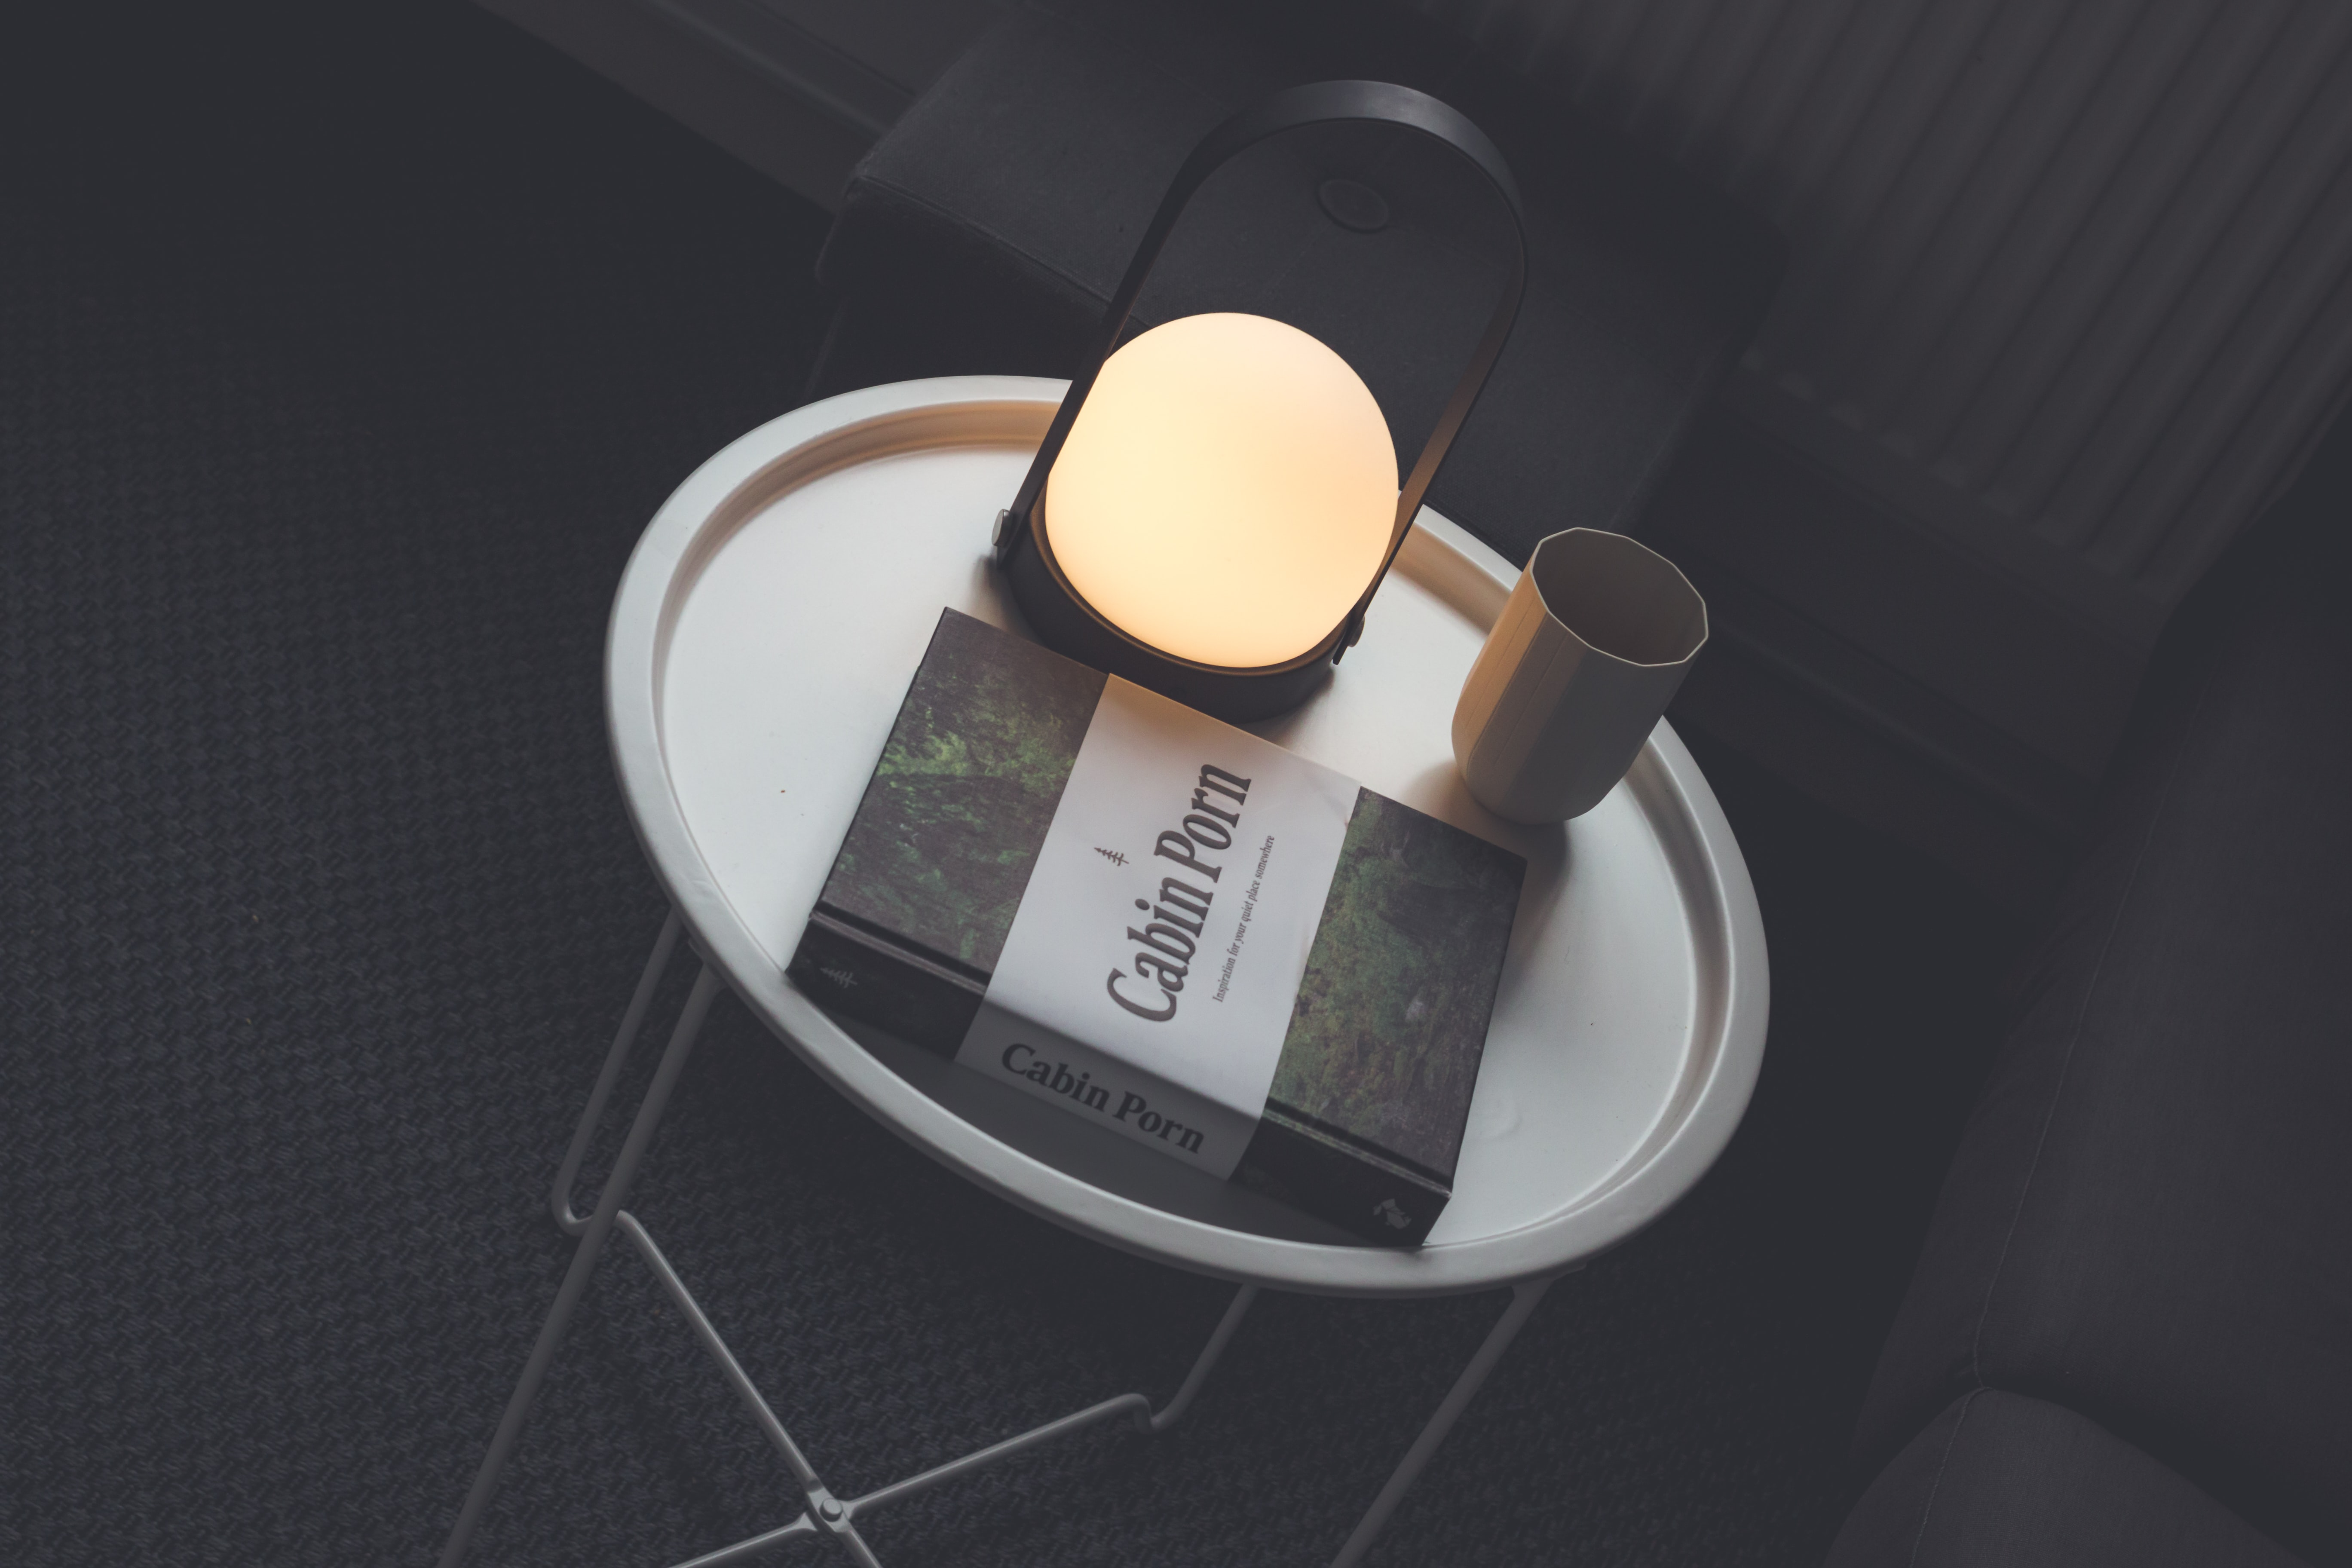 Cabin Porn book beside lamp and drinking cup on table